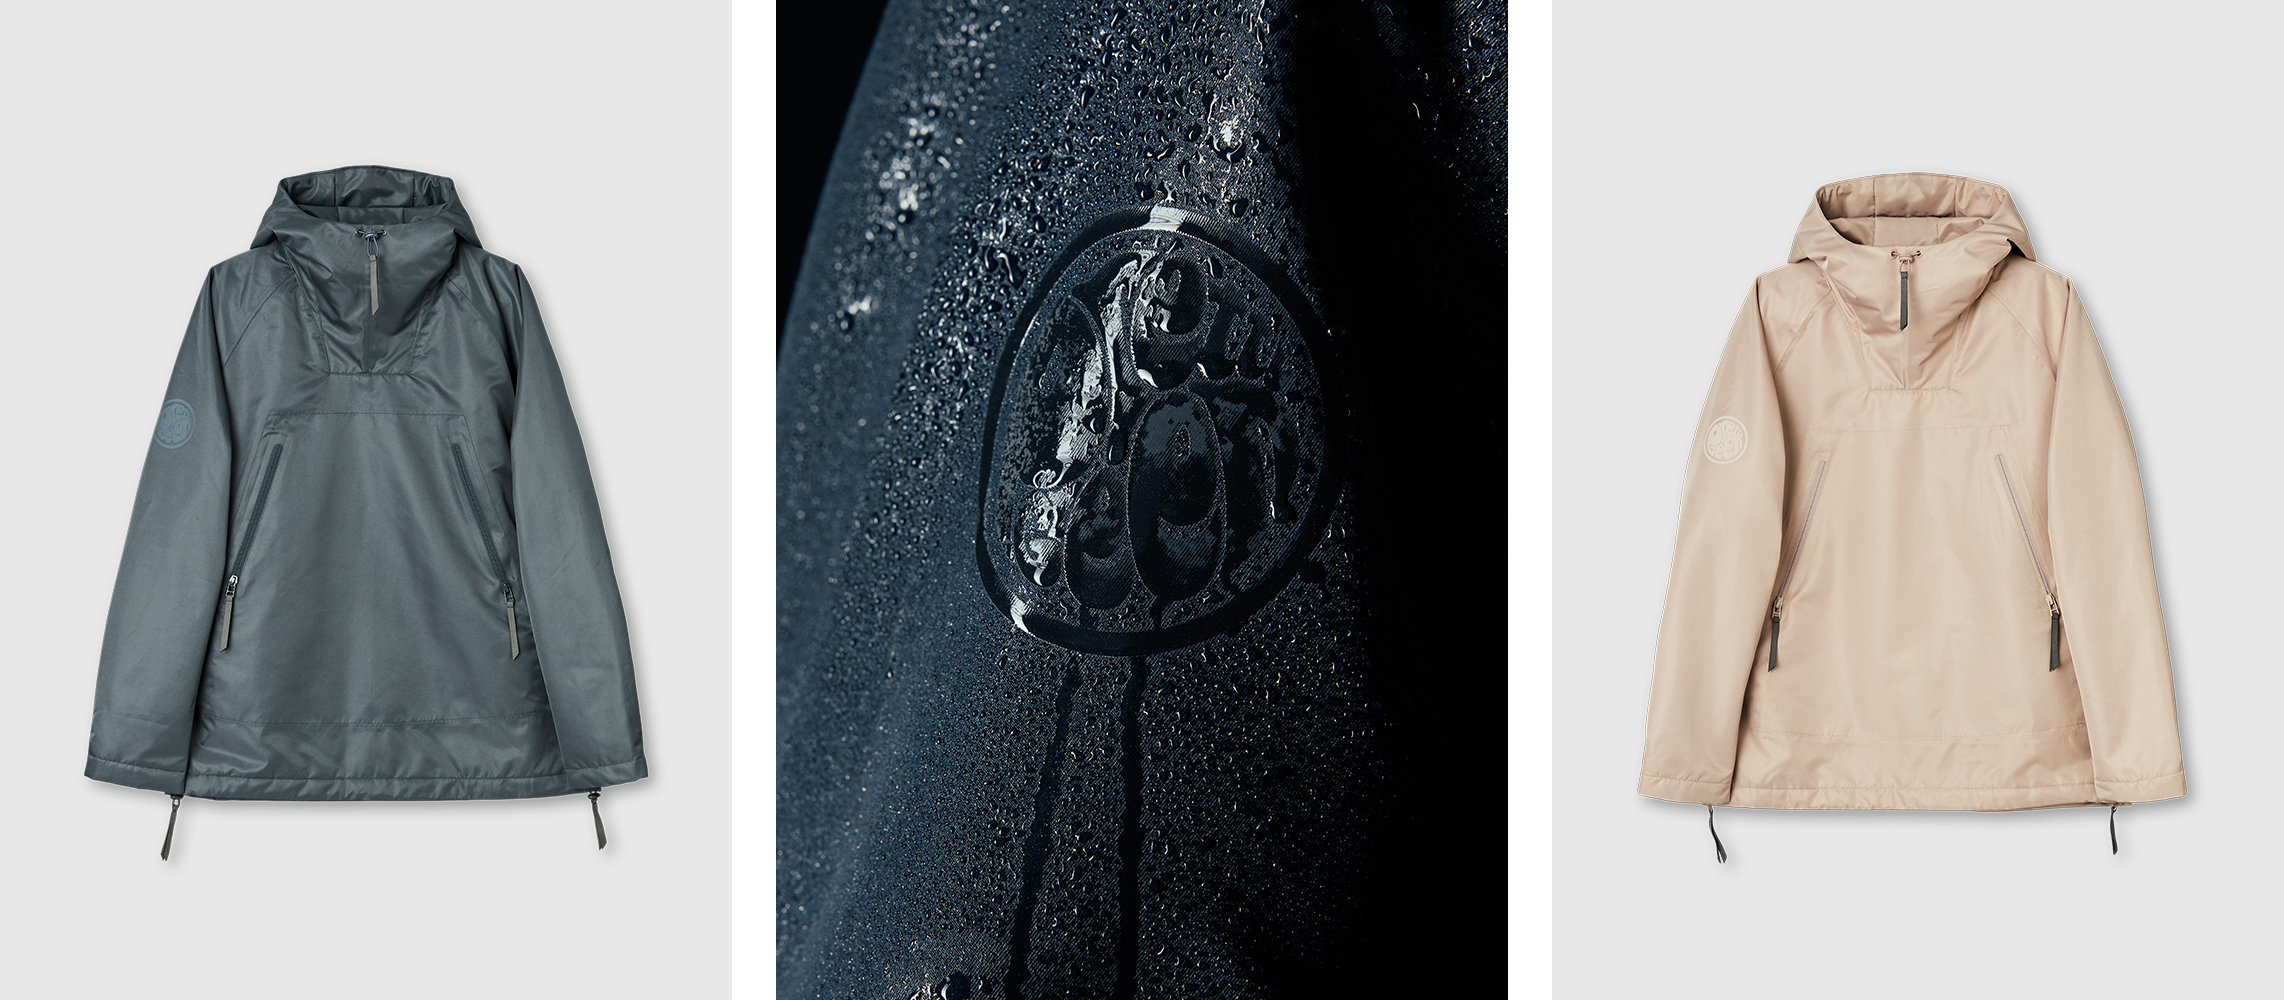 https://www.prettygreen.com/products/seam-sealed-insulated-overhead-jacket-3396/?color=charco&size=xsr